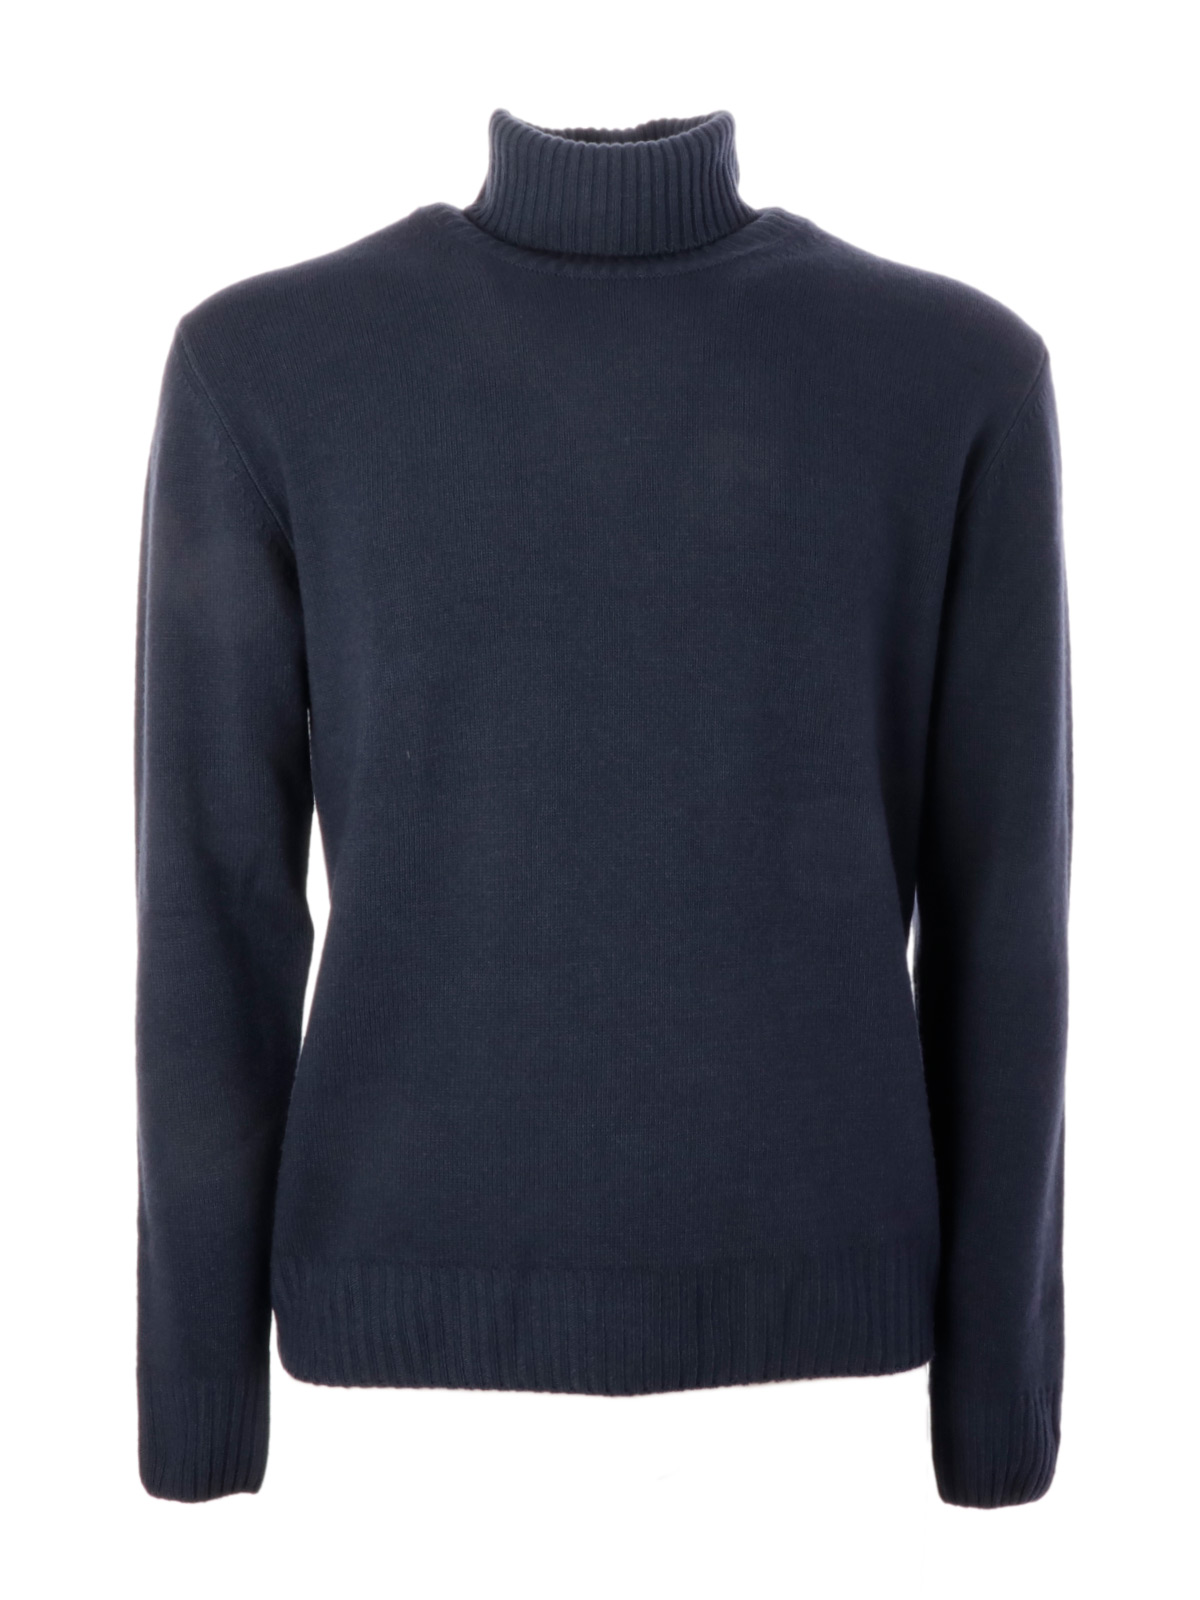 Picture of ALTEA | Men's Turtleneck Sweater